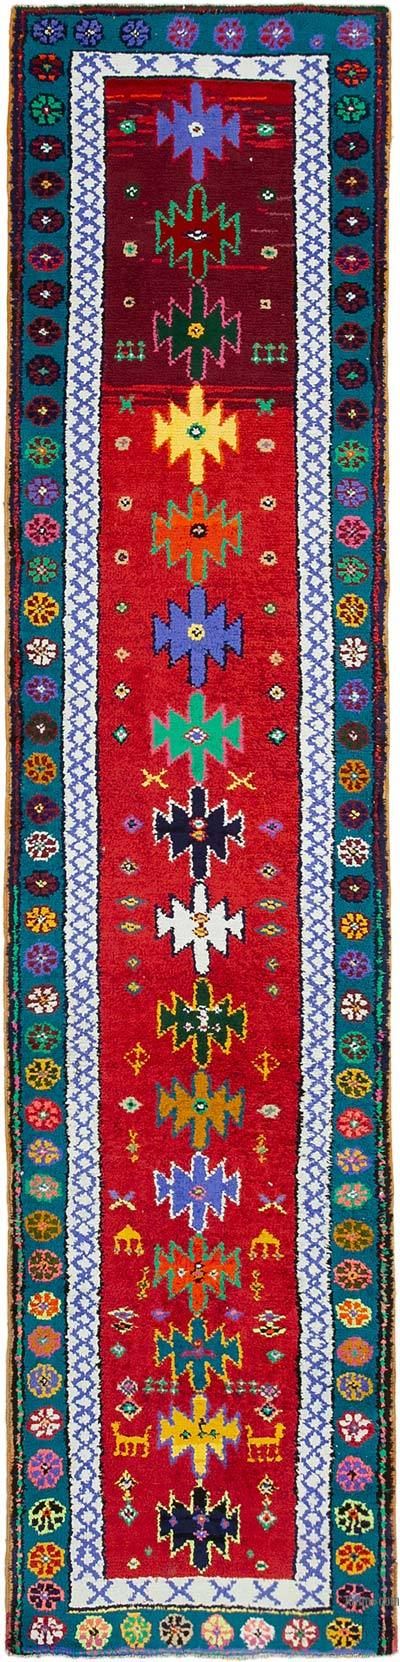 "Vintage Turkish Runner Rug - 2' 11"" x 12' 2"" (35 in. x 146 in.)"